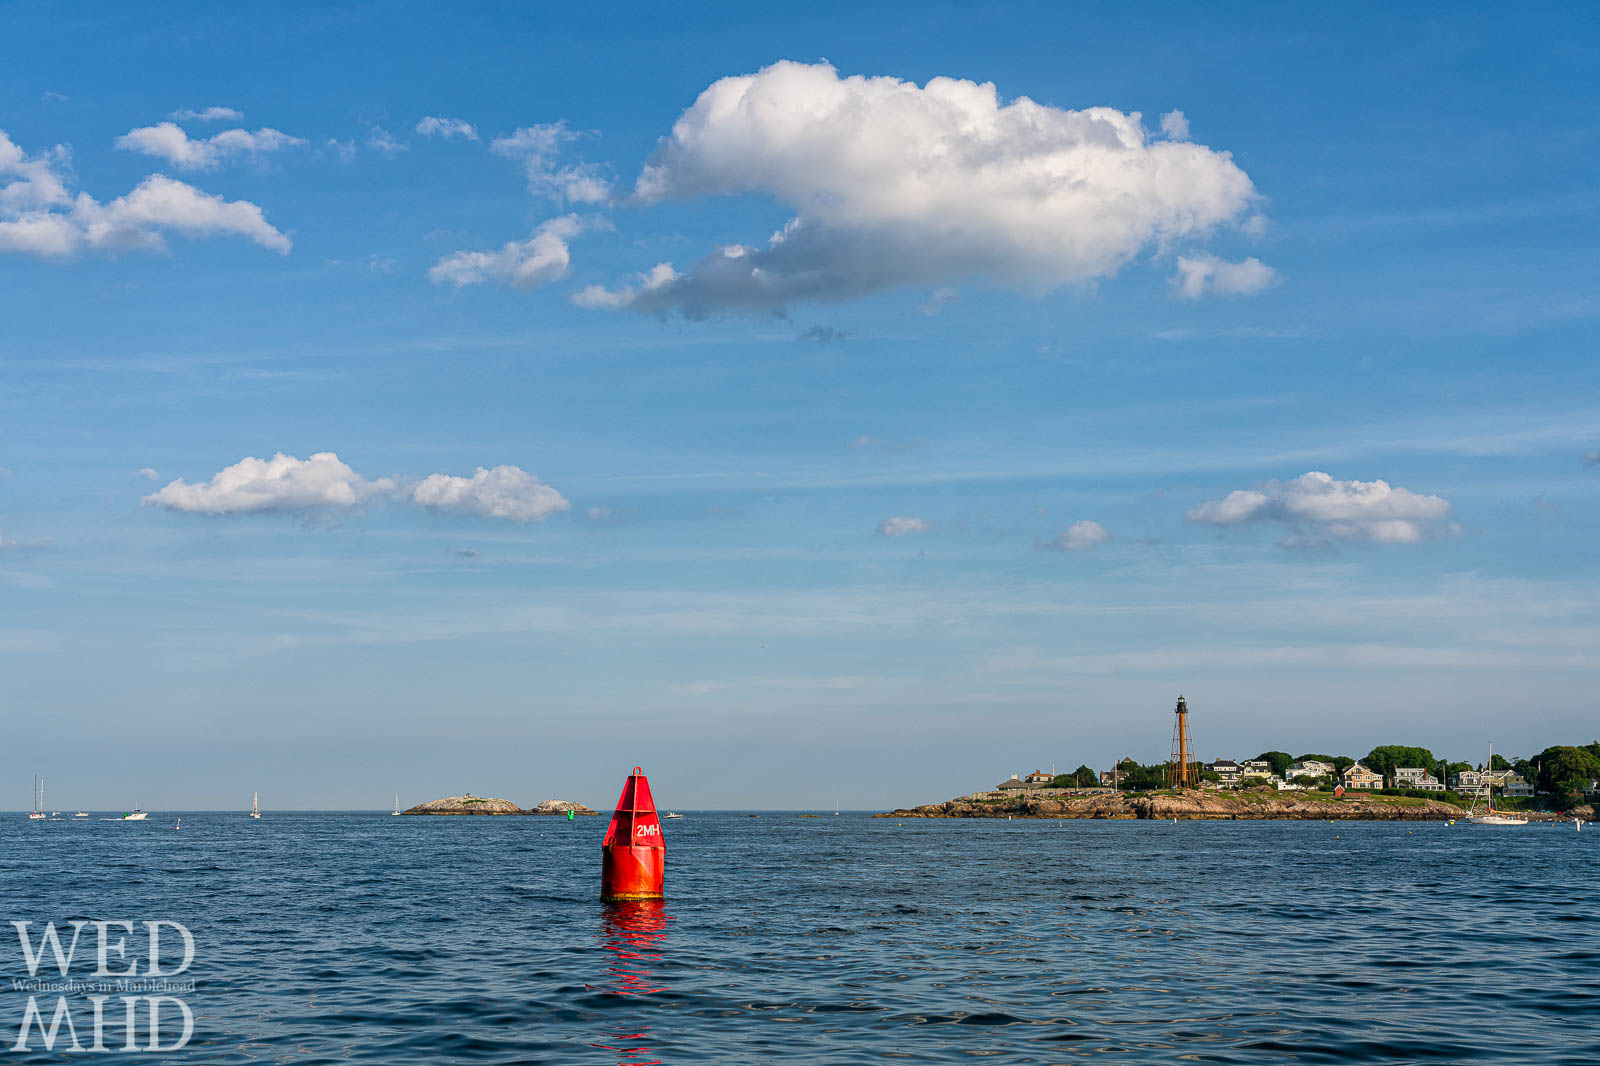 A red channel marker labeled 3MH is captured marking the harbor entrance into Marblehead with the lighthouse on Chandler Hovey Park in the background